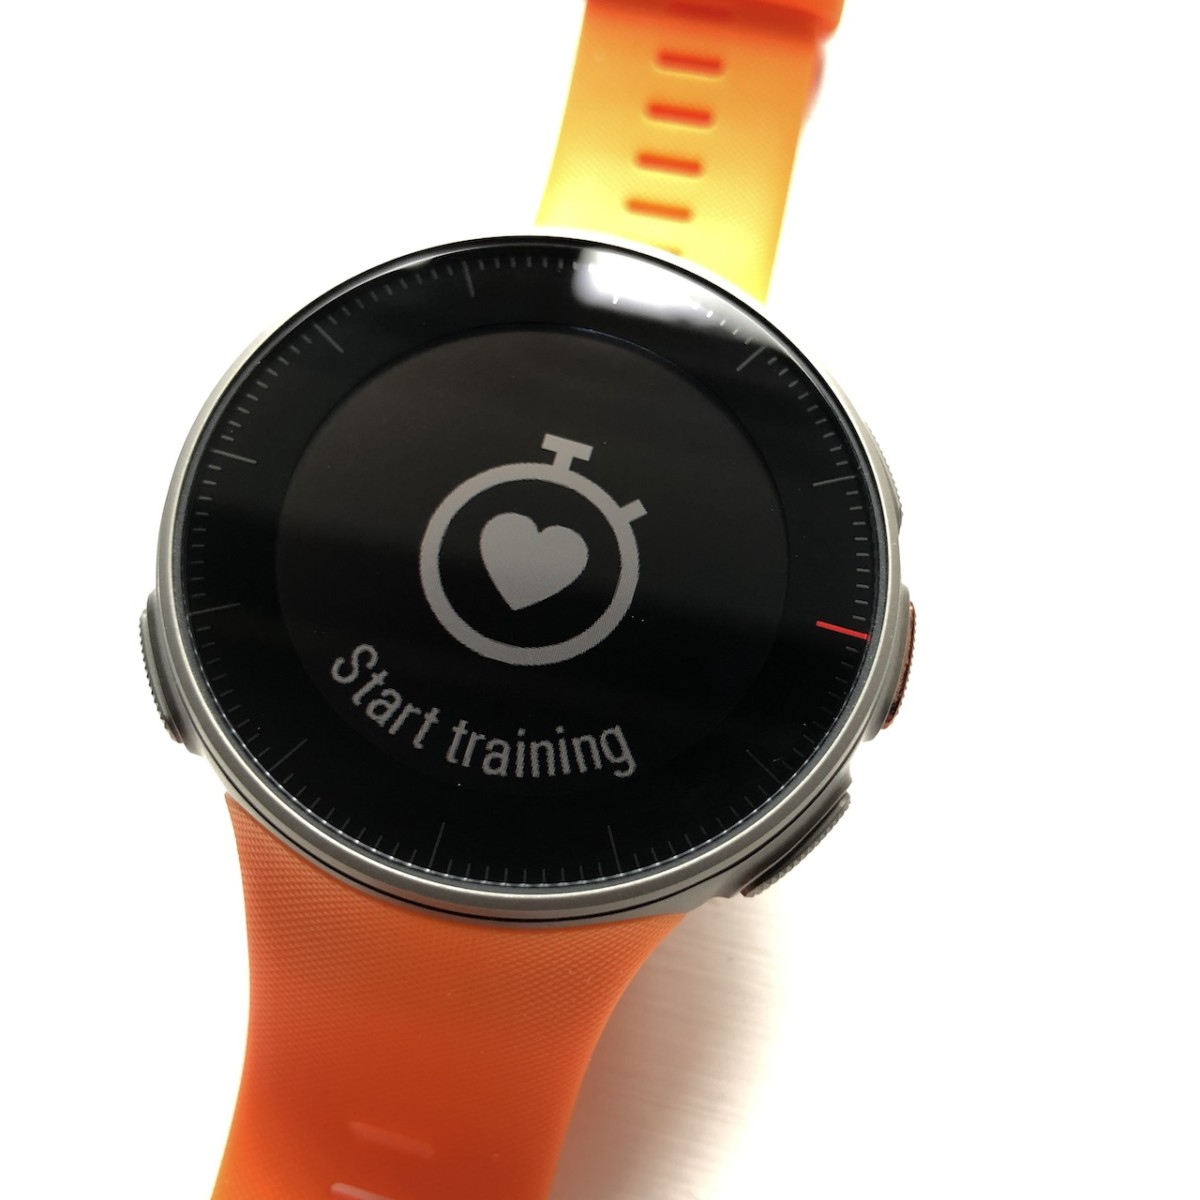 TitaniumGeek IMG 0896 Polar Vantage V Review   A Garmin Killer? Cycling Gear Reviews Heart Rate Monitors Running  running Polar HRM garmin cycling apple watch   Image of IMG 0896